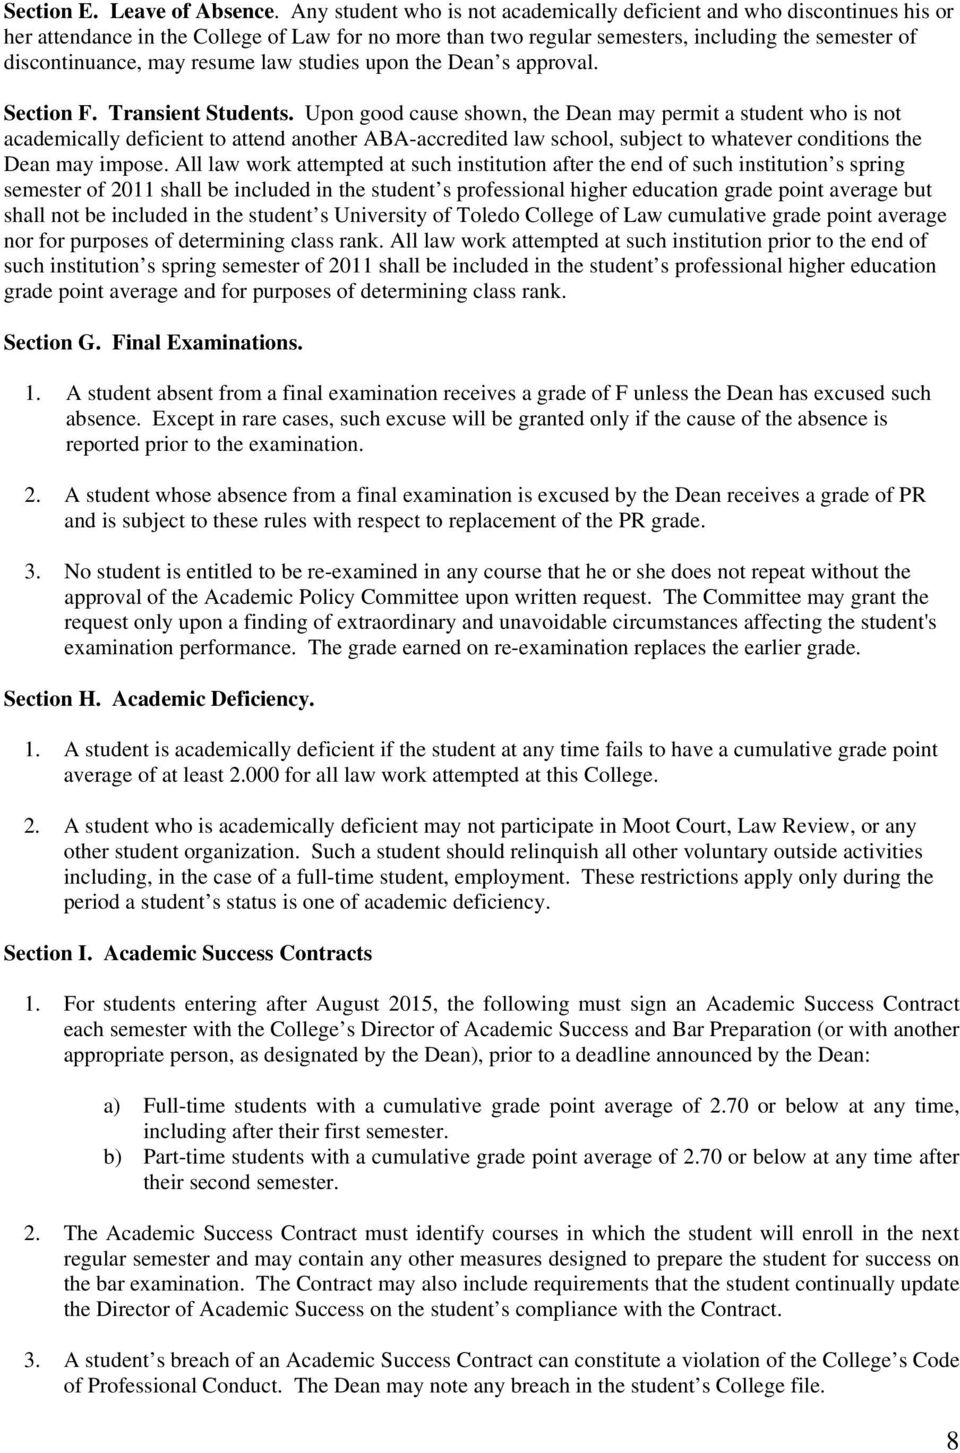 resume law studies upon the Dean s approval. Section F. Transient Students.